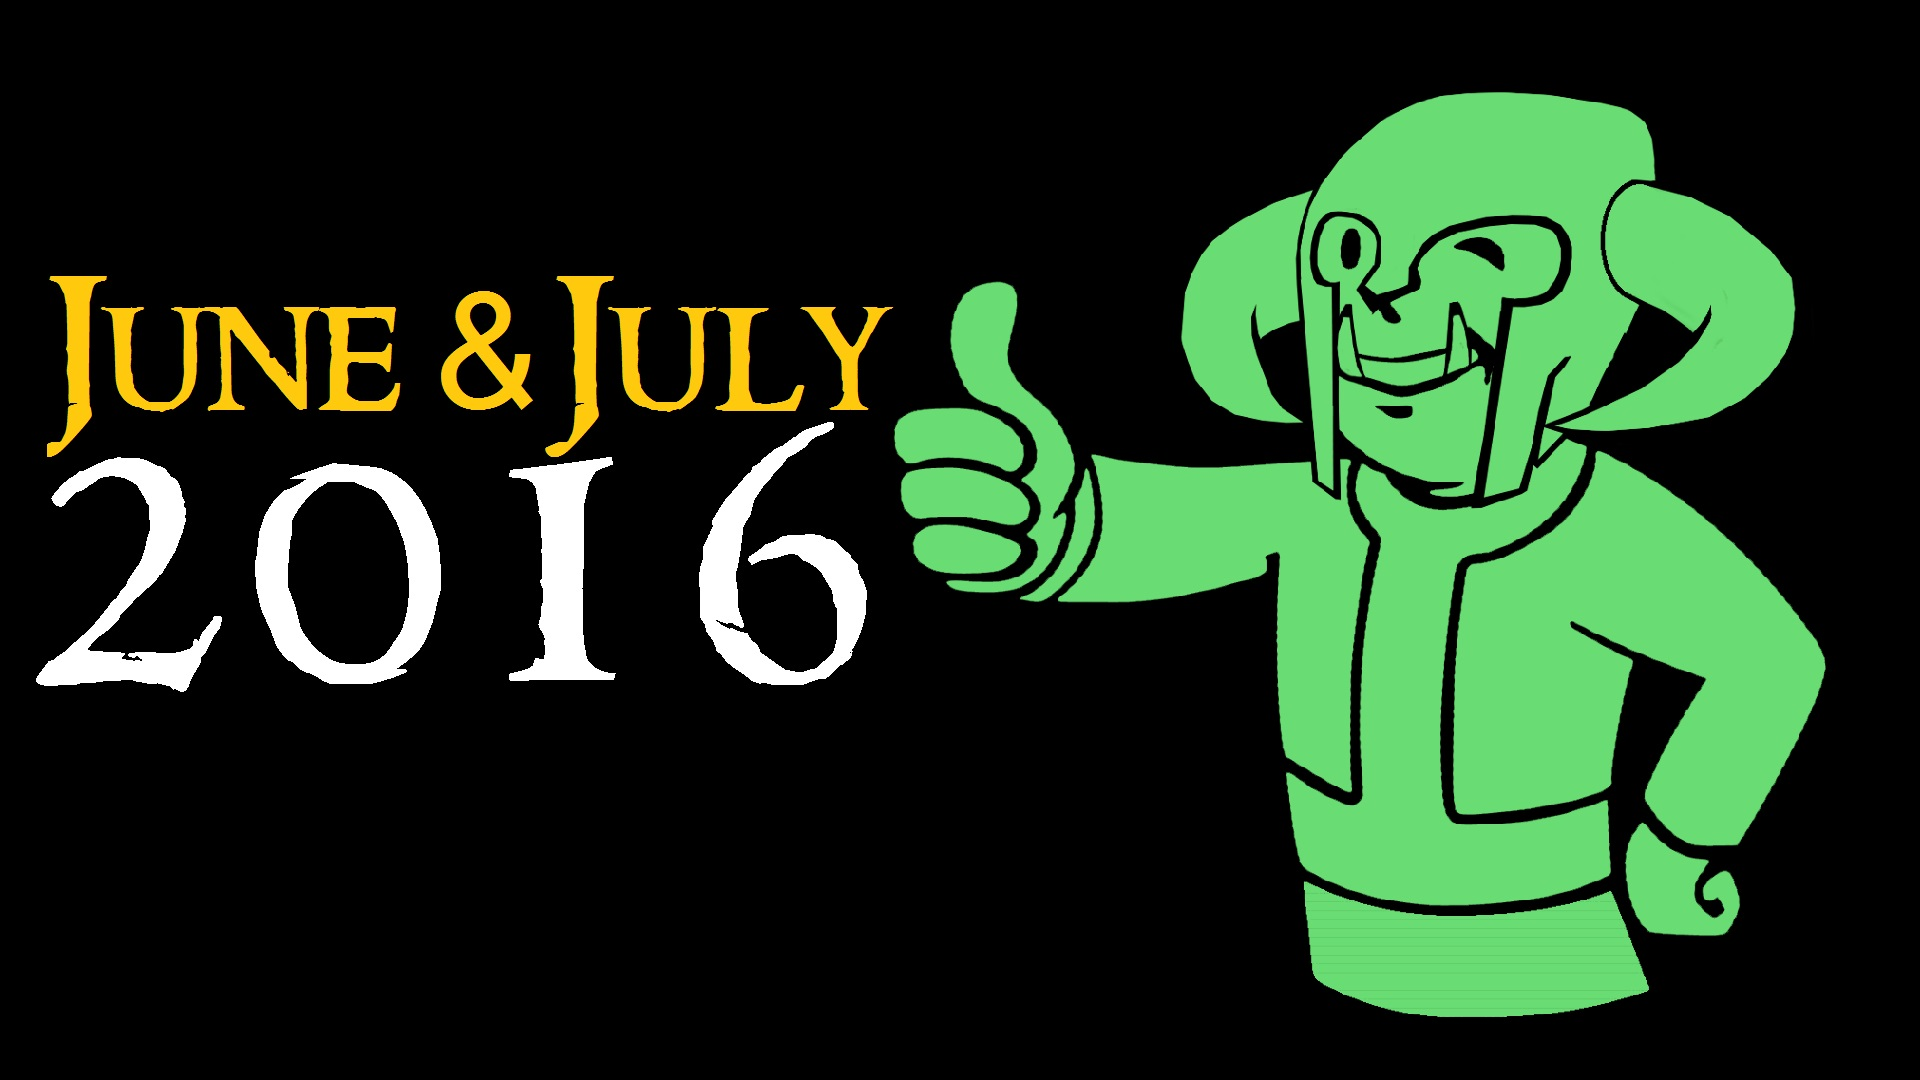 Minions Monthly June and July 2016